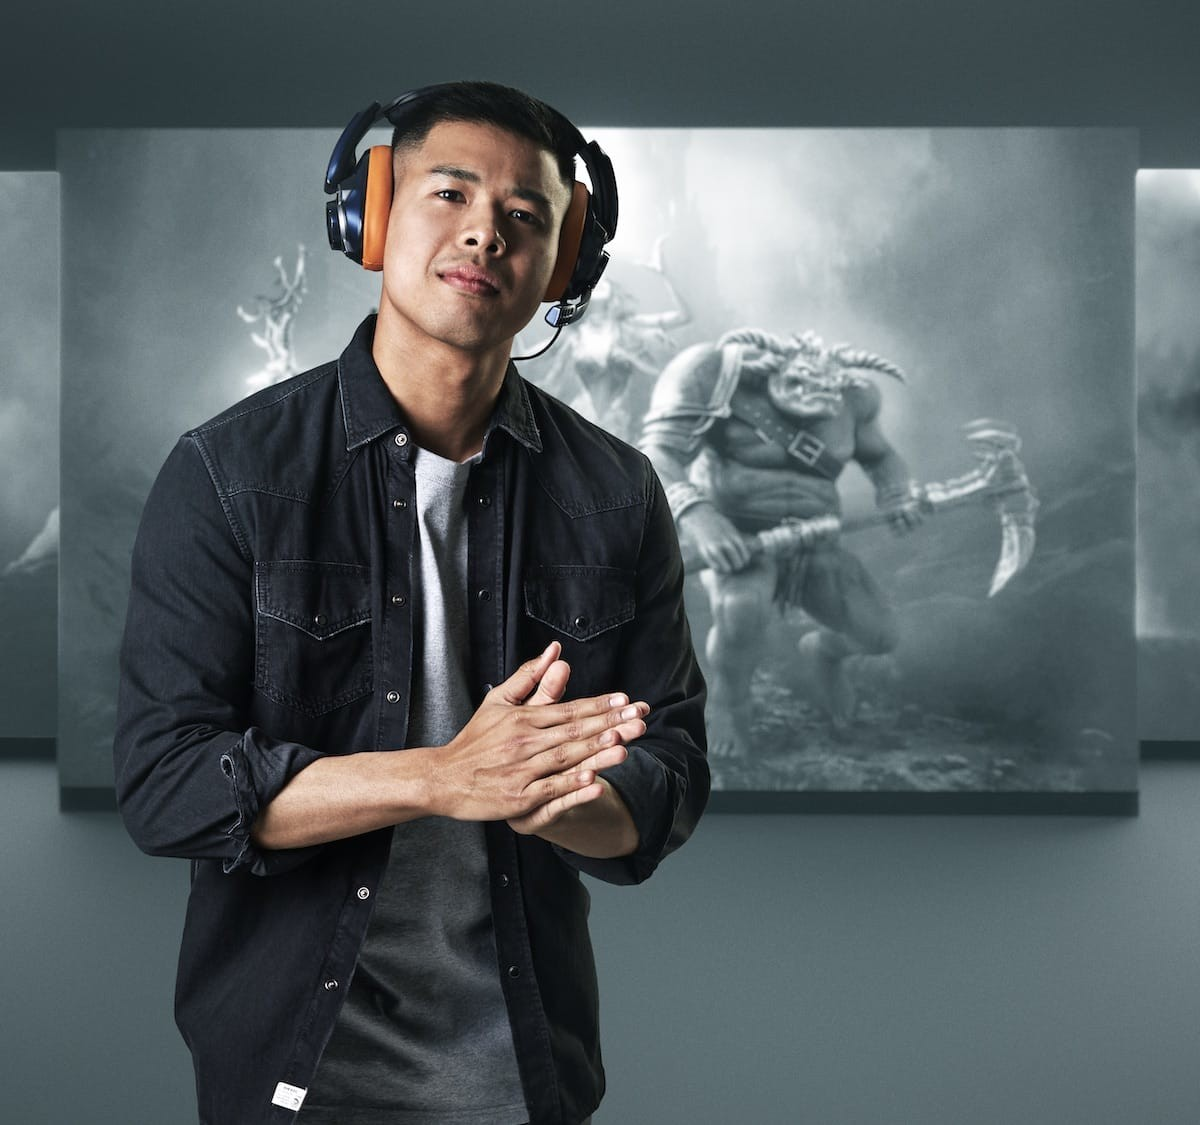 EPOS GSP 600 series premium gaming headsets have aesthetics, quality materials, & comfort